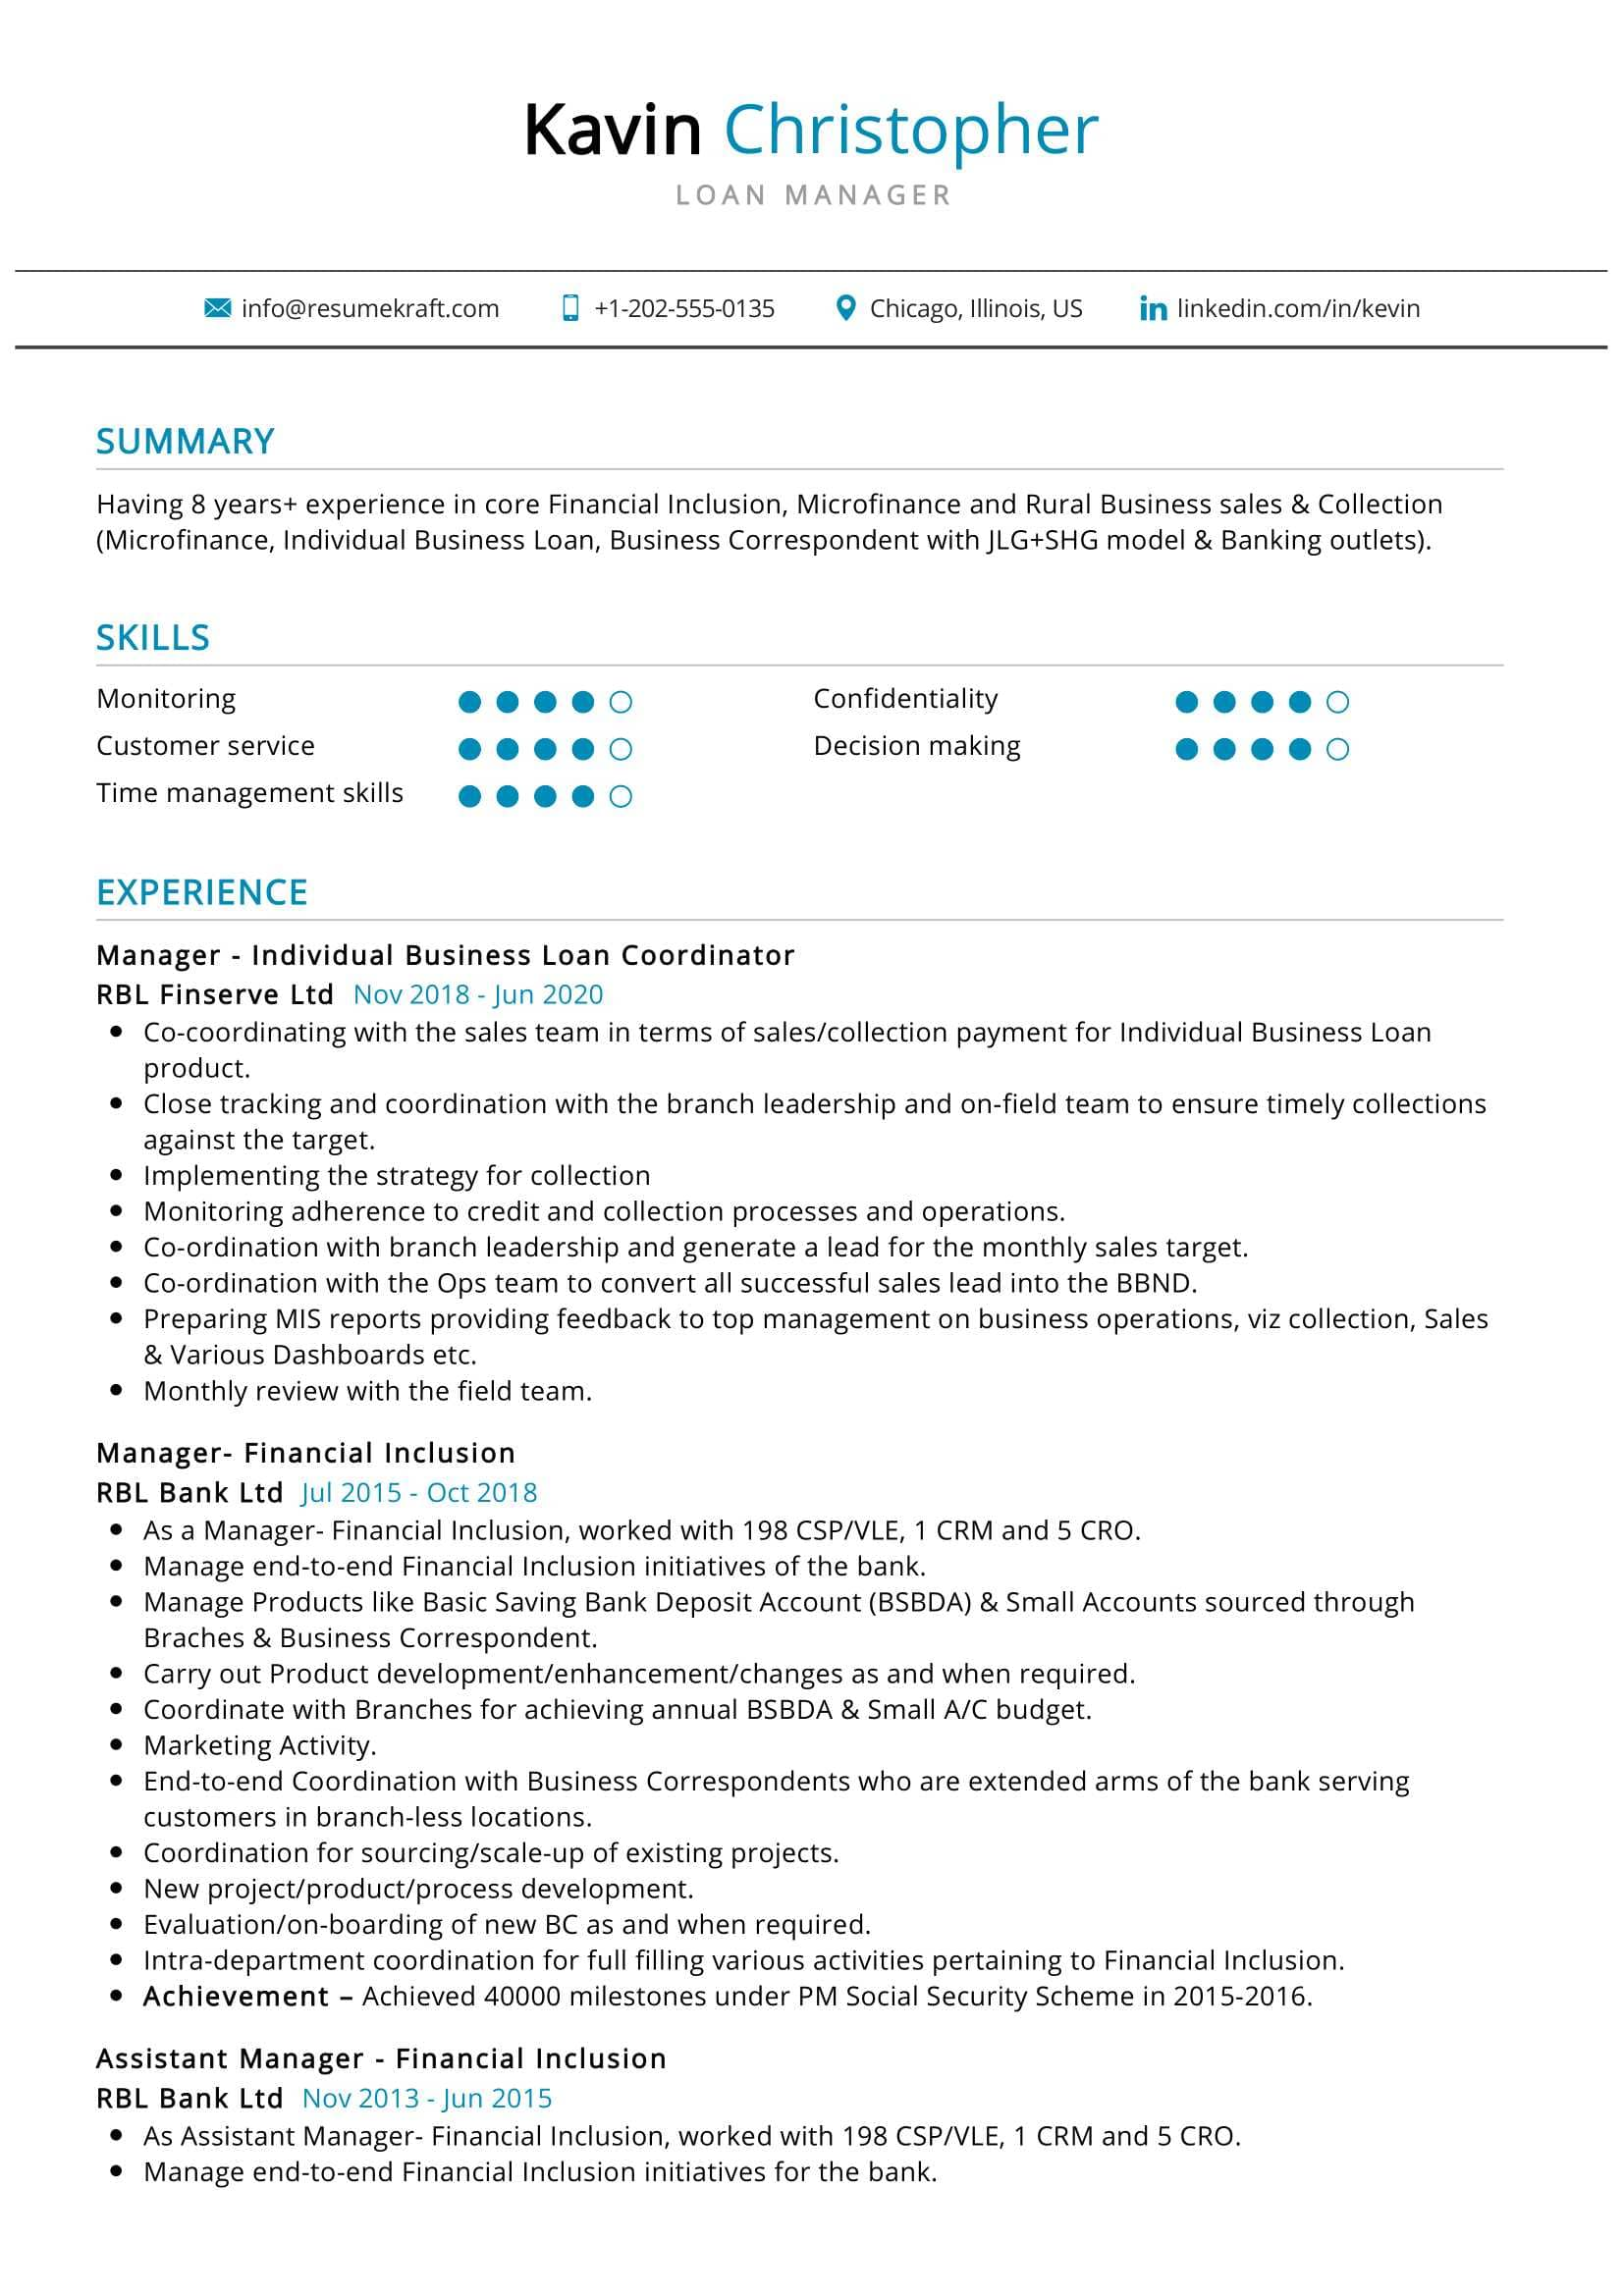 Loan Manager Resume Sample